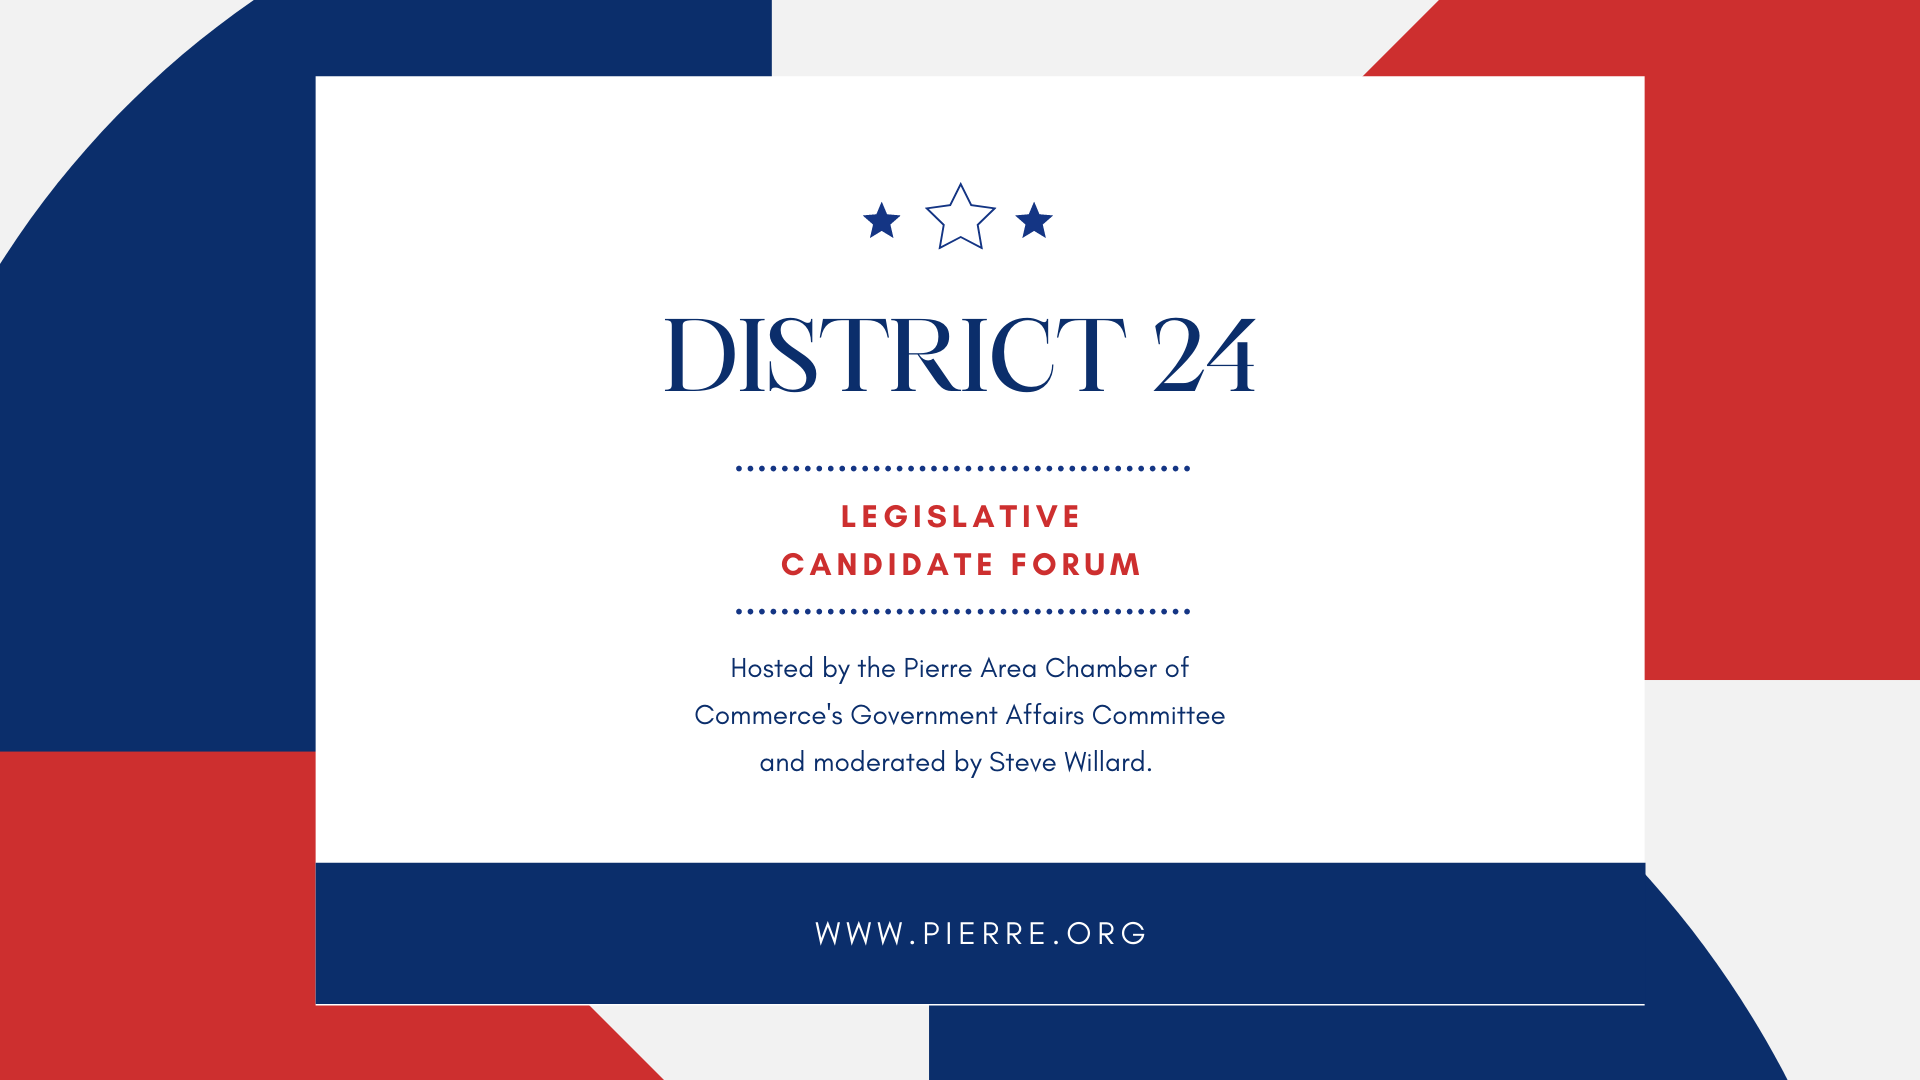 Image for Legislative Candidate Forum for District 24 House of Representatives